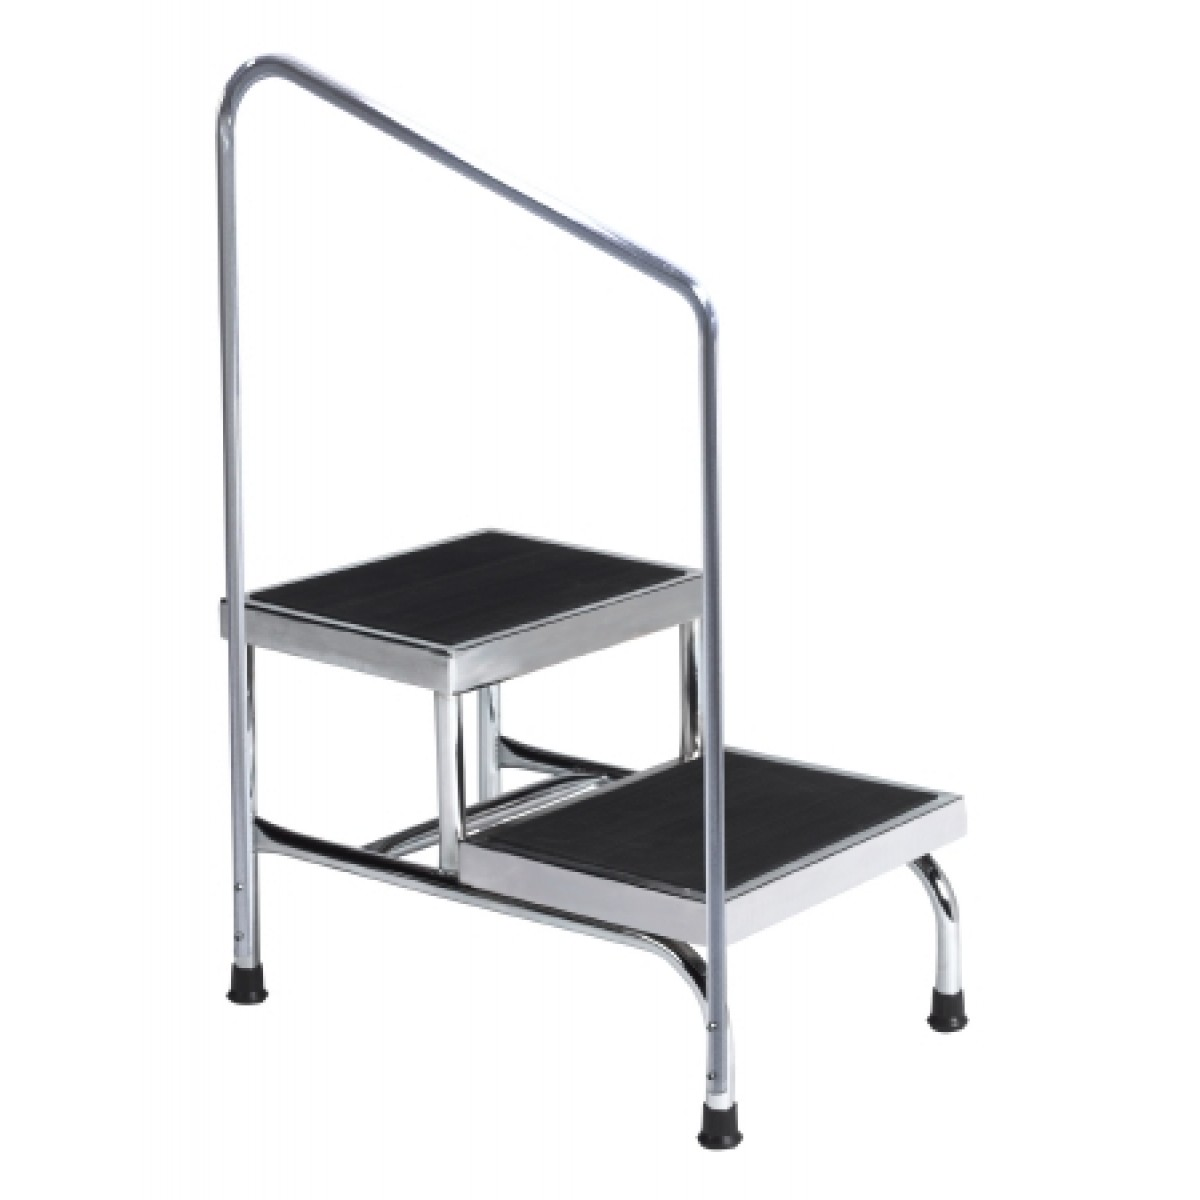 Entrust Performance Step Stool With Handrail 16 W X 24 L